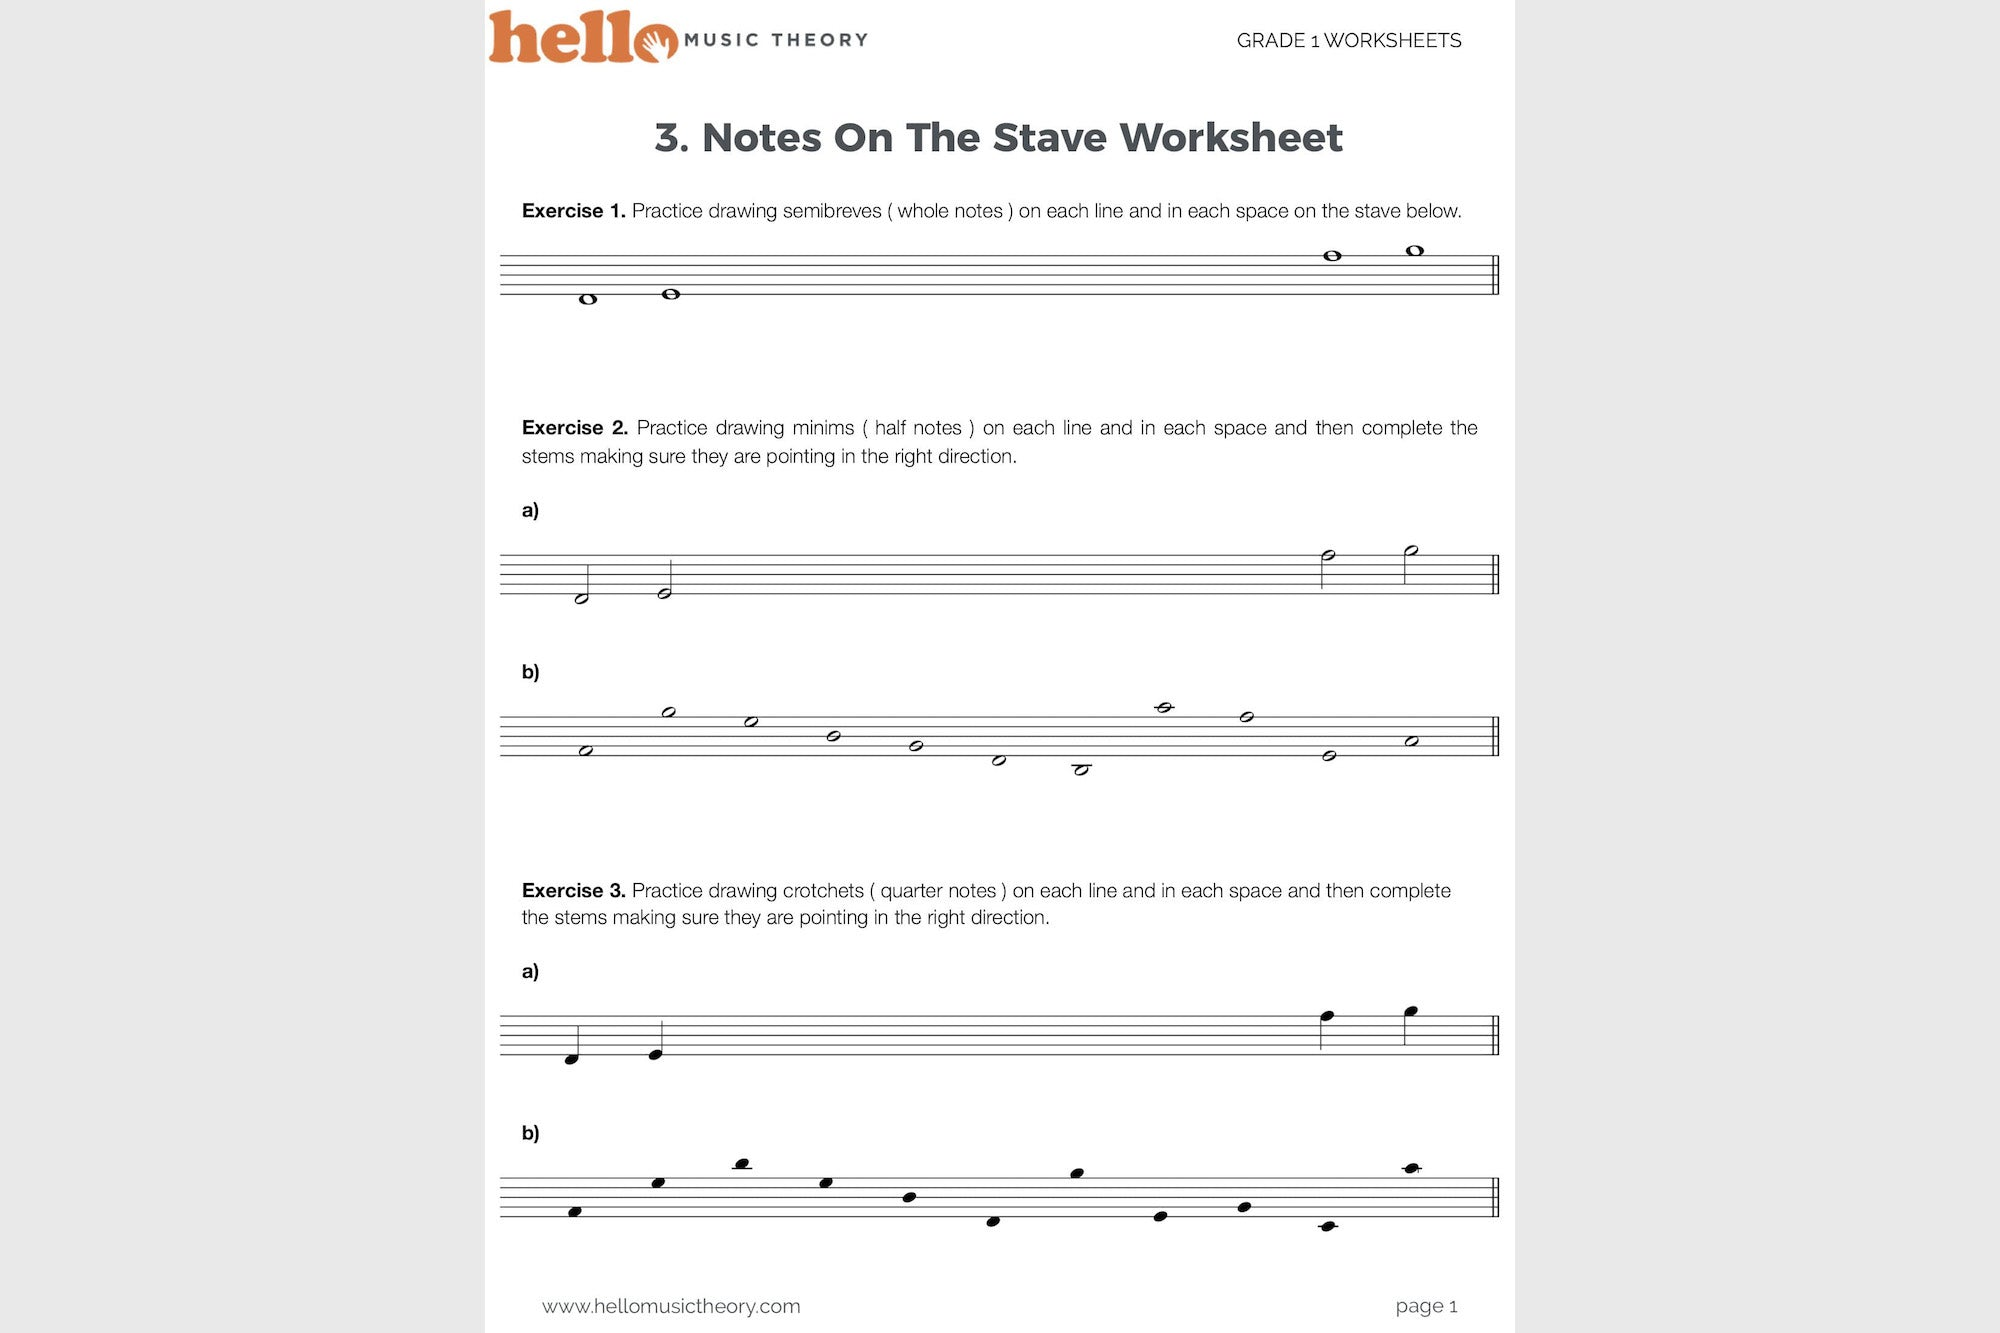 Worksheets Music Theory Worksheet grade 1 music theory worksheets hello pack